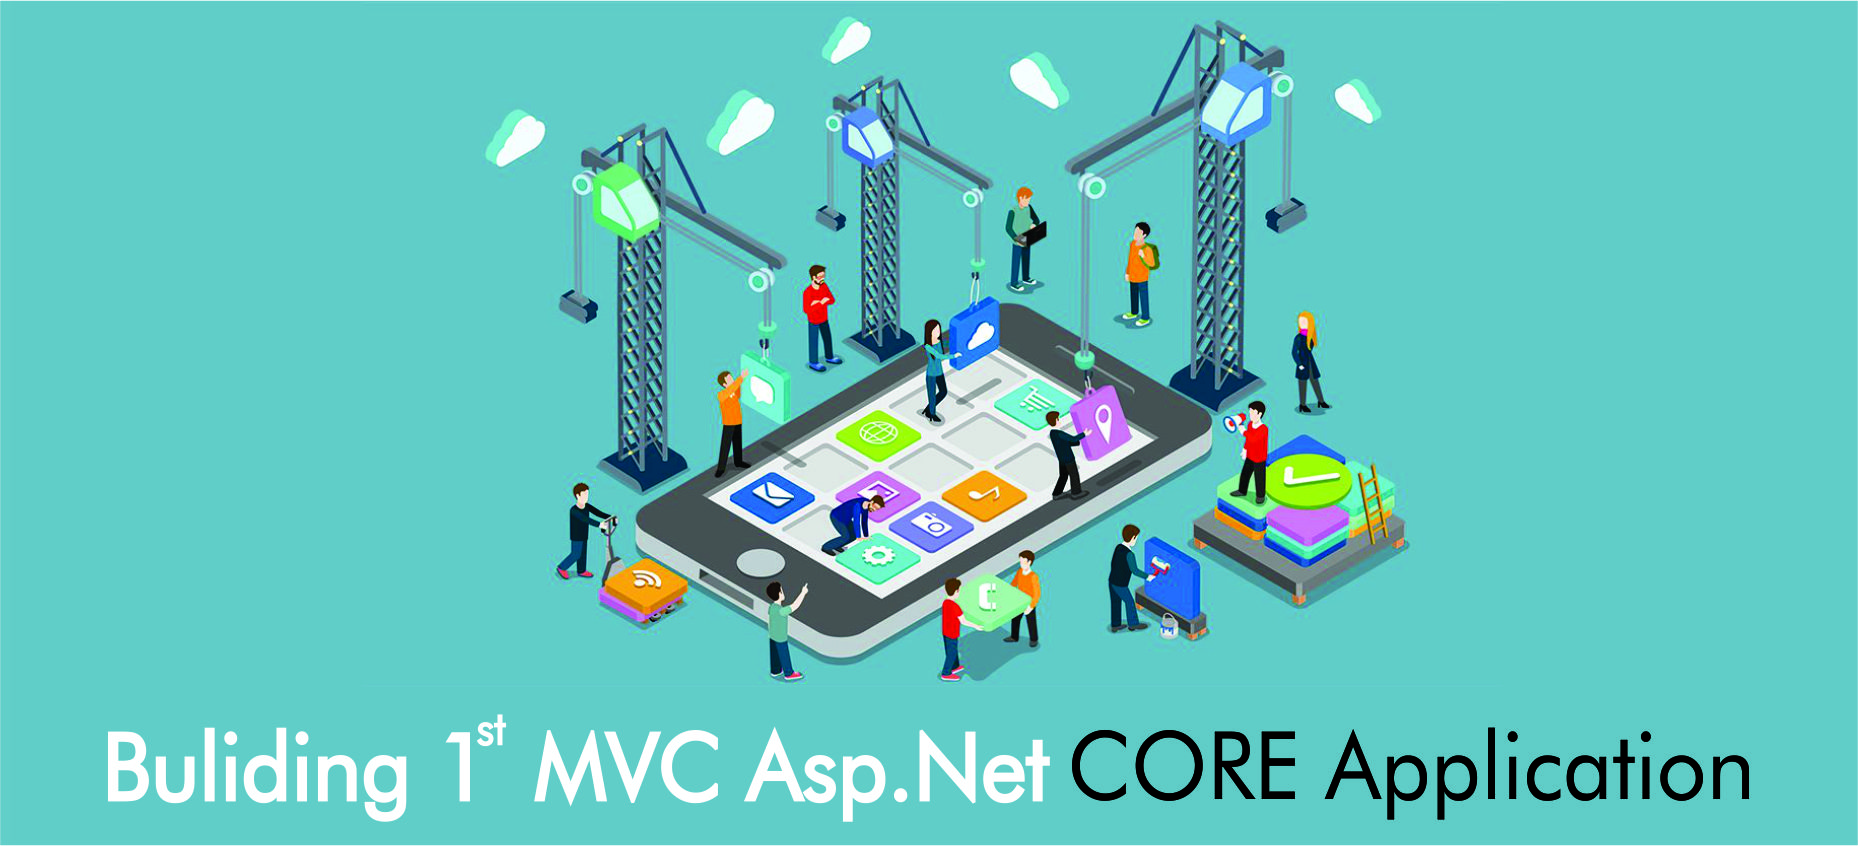 what-is-asp-net-core-and-buliding-first-mvc-asp-net-core-application